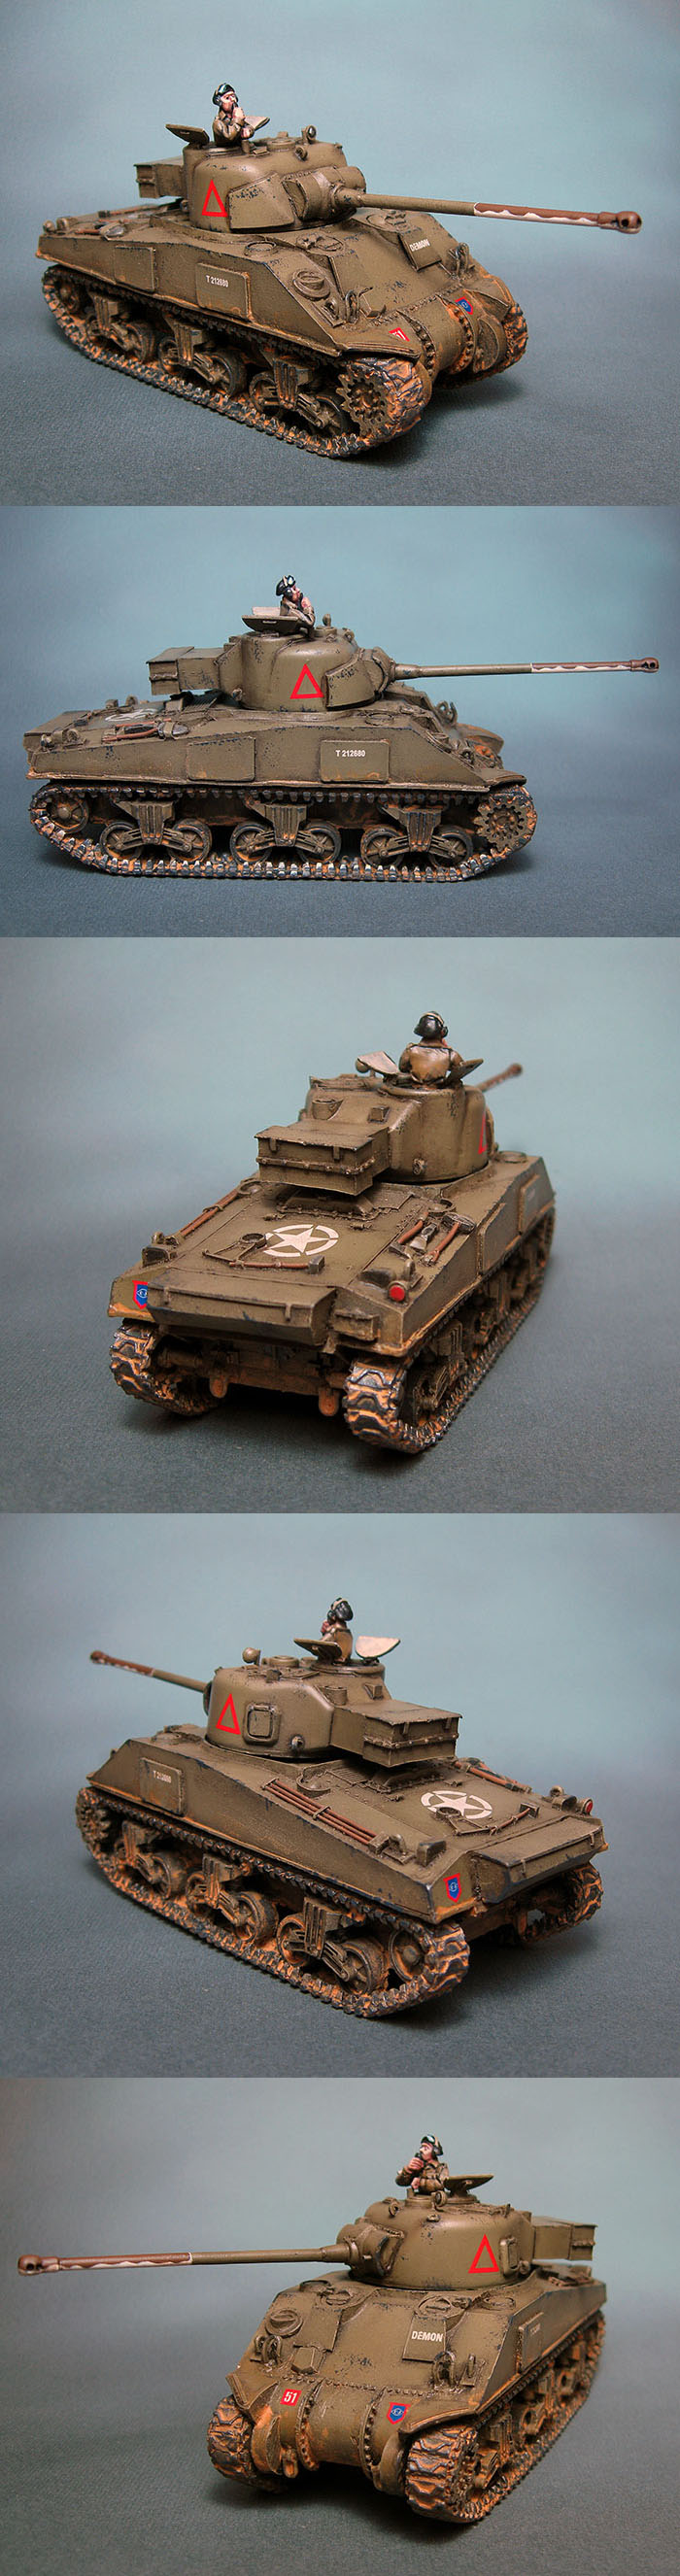 British Sherman FIREFLY VC Scale: 1/56(28mm) Manufacturer: Warlord